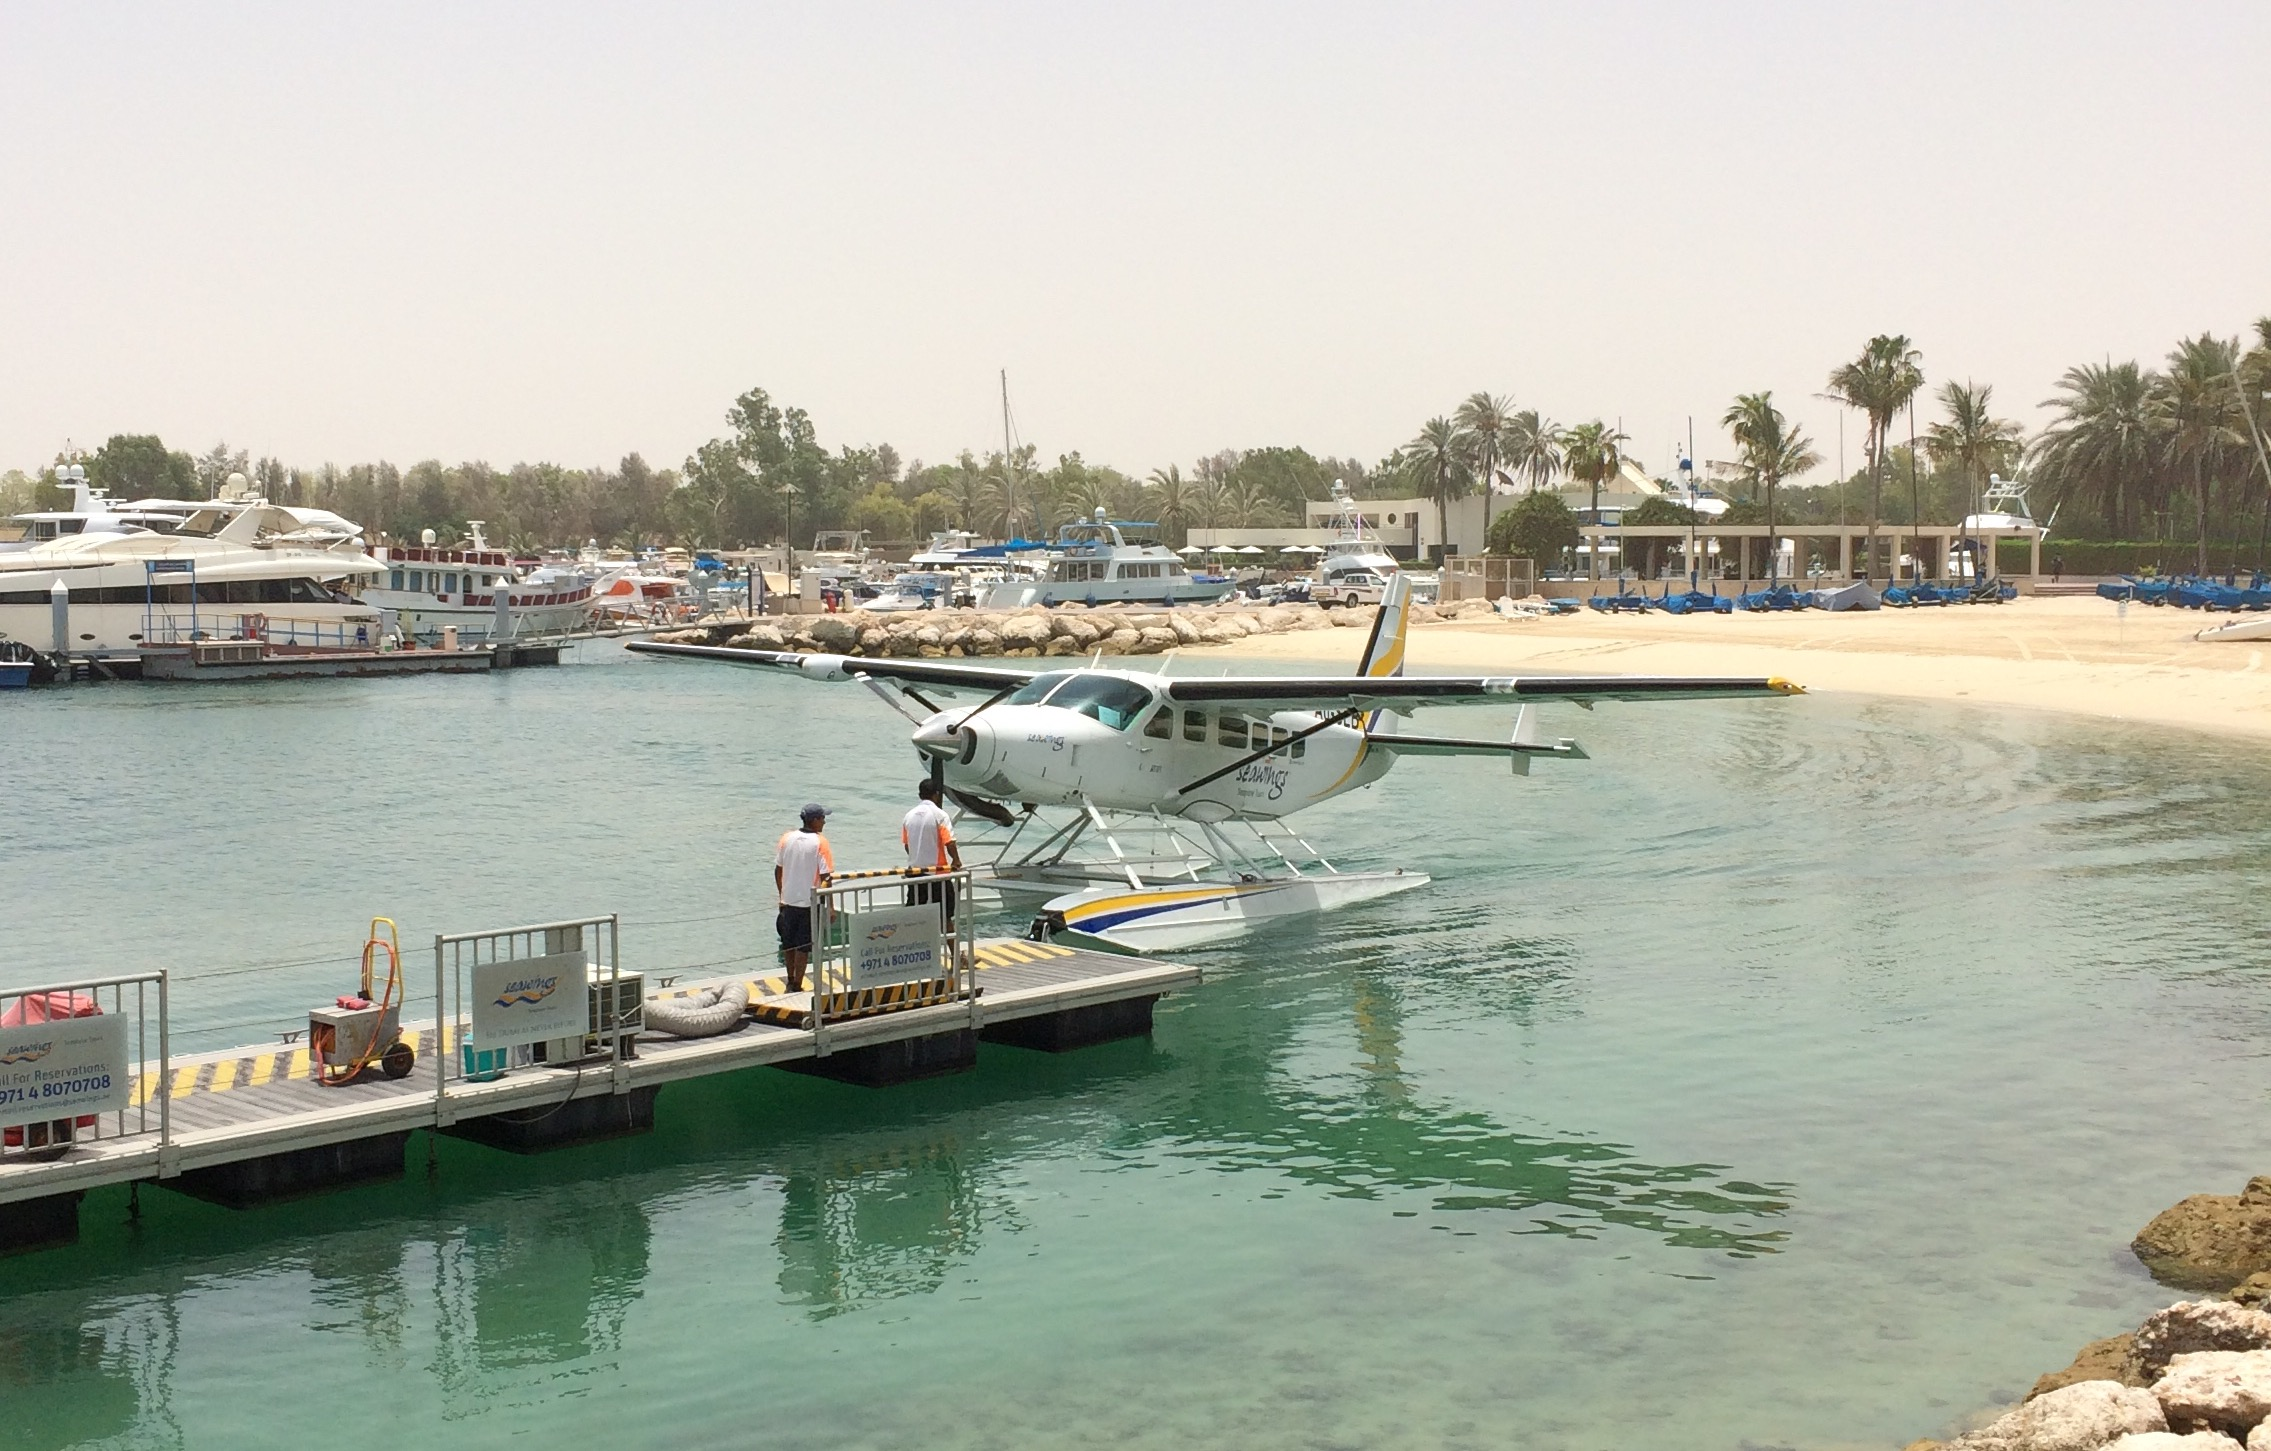 The Jetty watching the seaplane taxi in